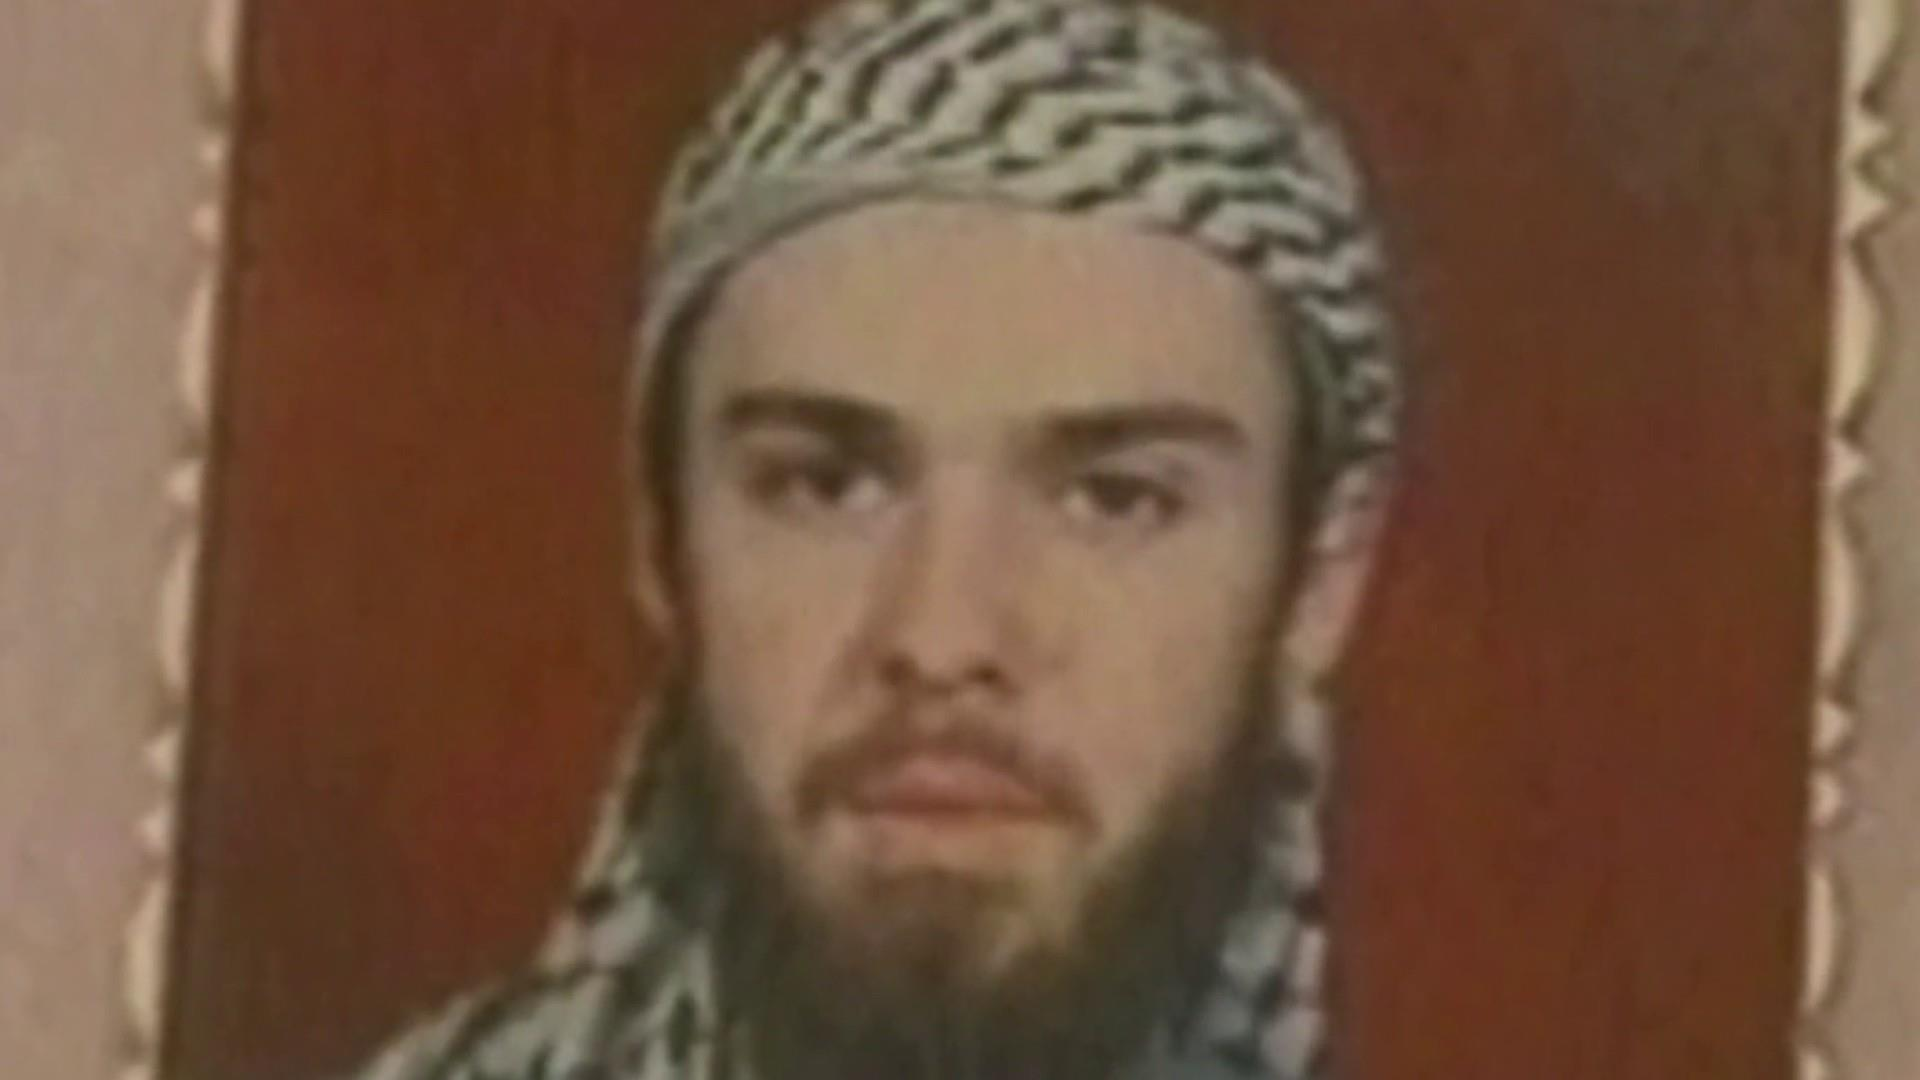 American who joined the Taliban released from prison